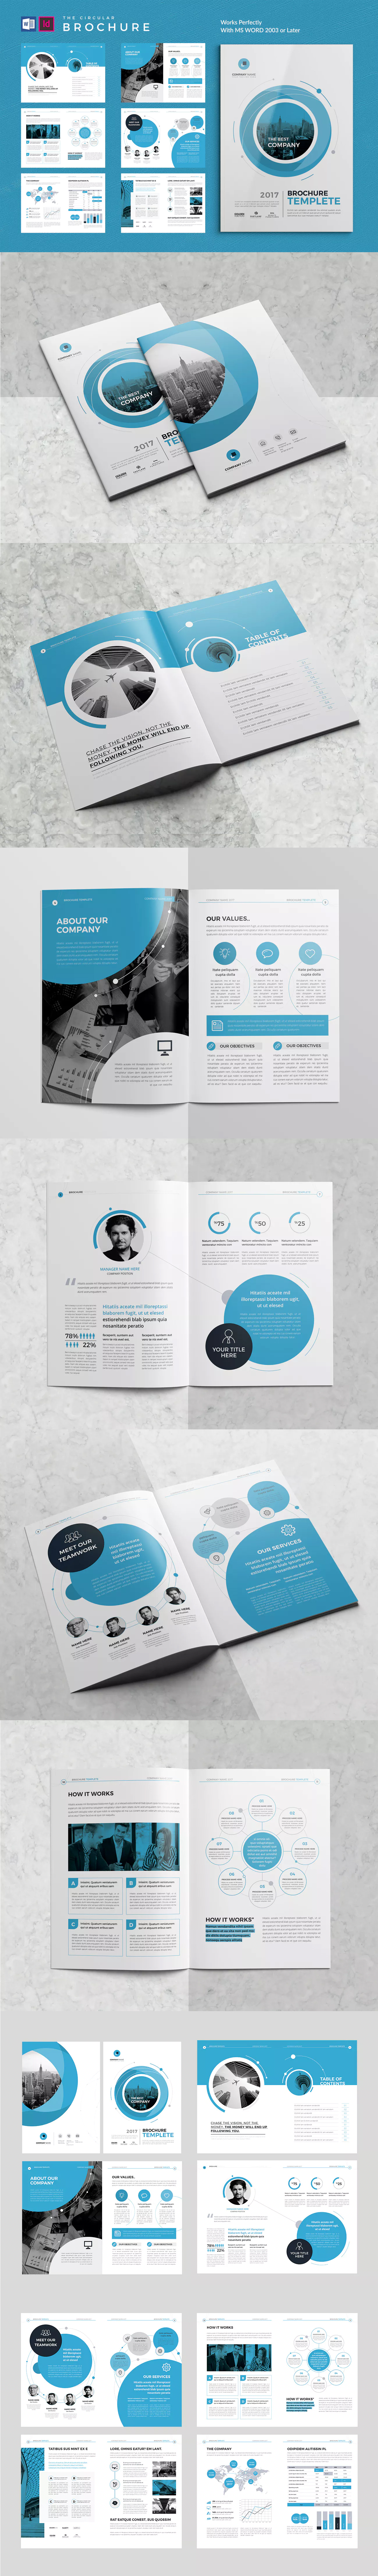 Co Brochure Template InDesign INDD MS Word A4 | DISEÑO | Pinterest ...